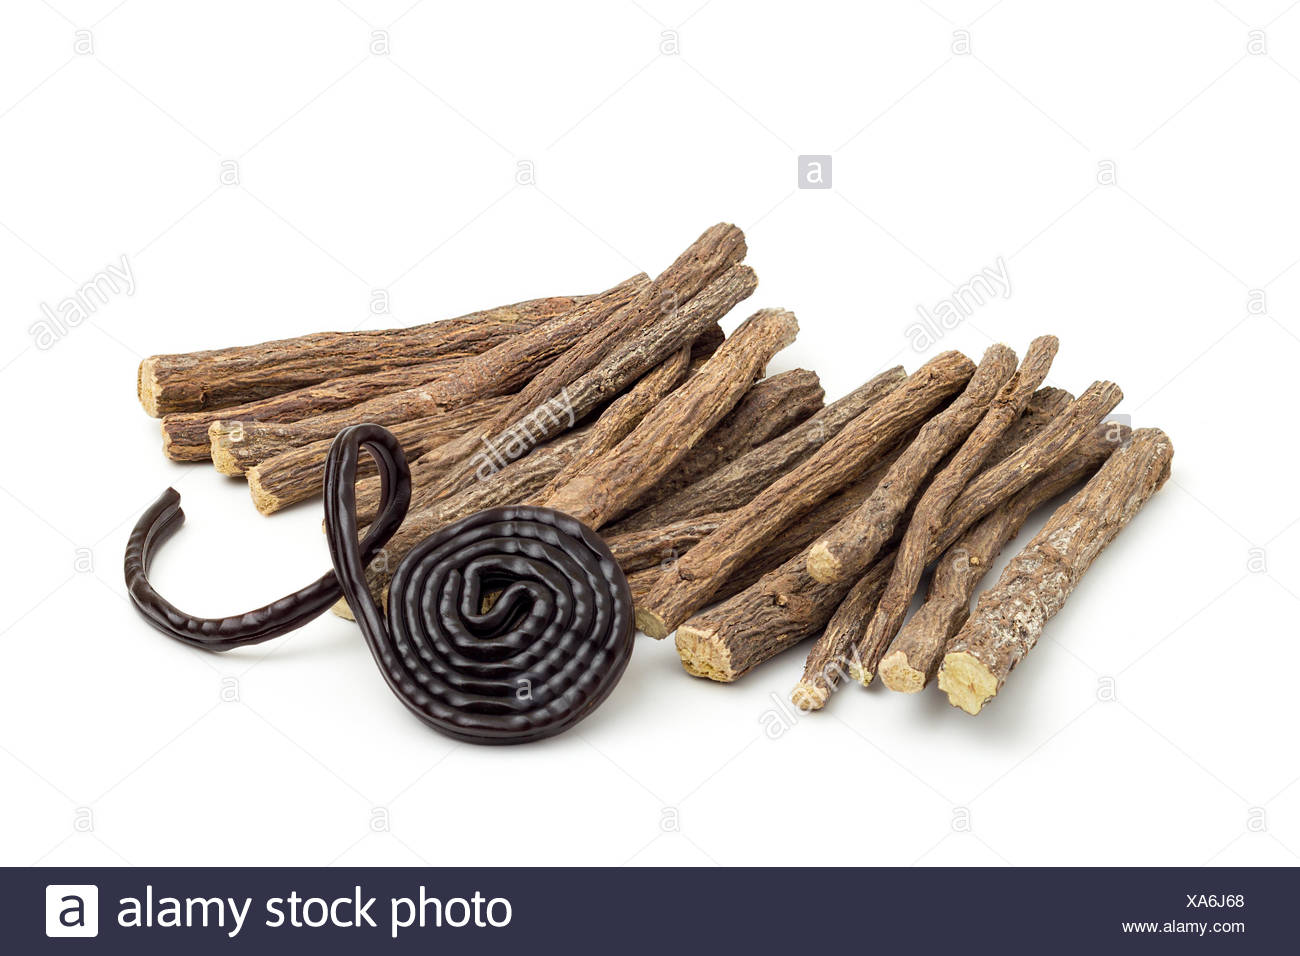 Licorice roots and wheel - Stock Image